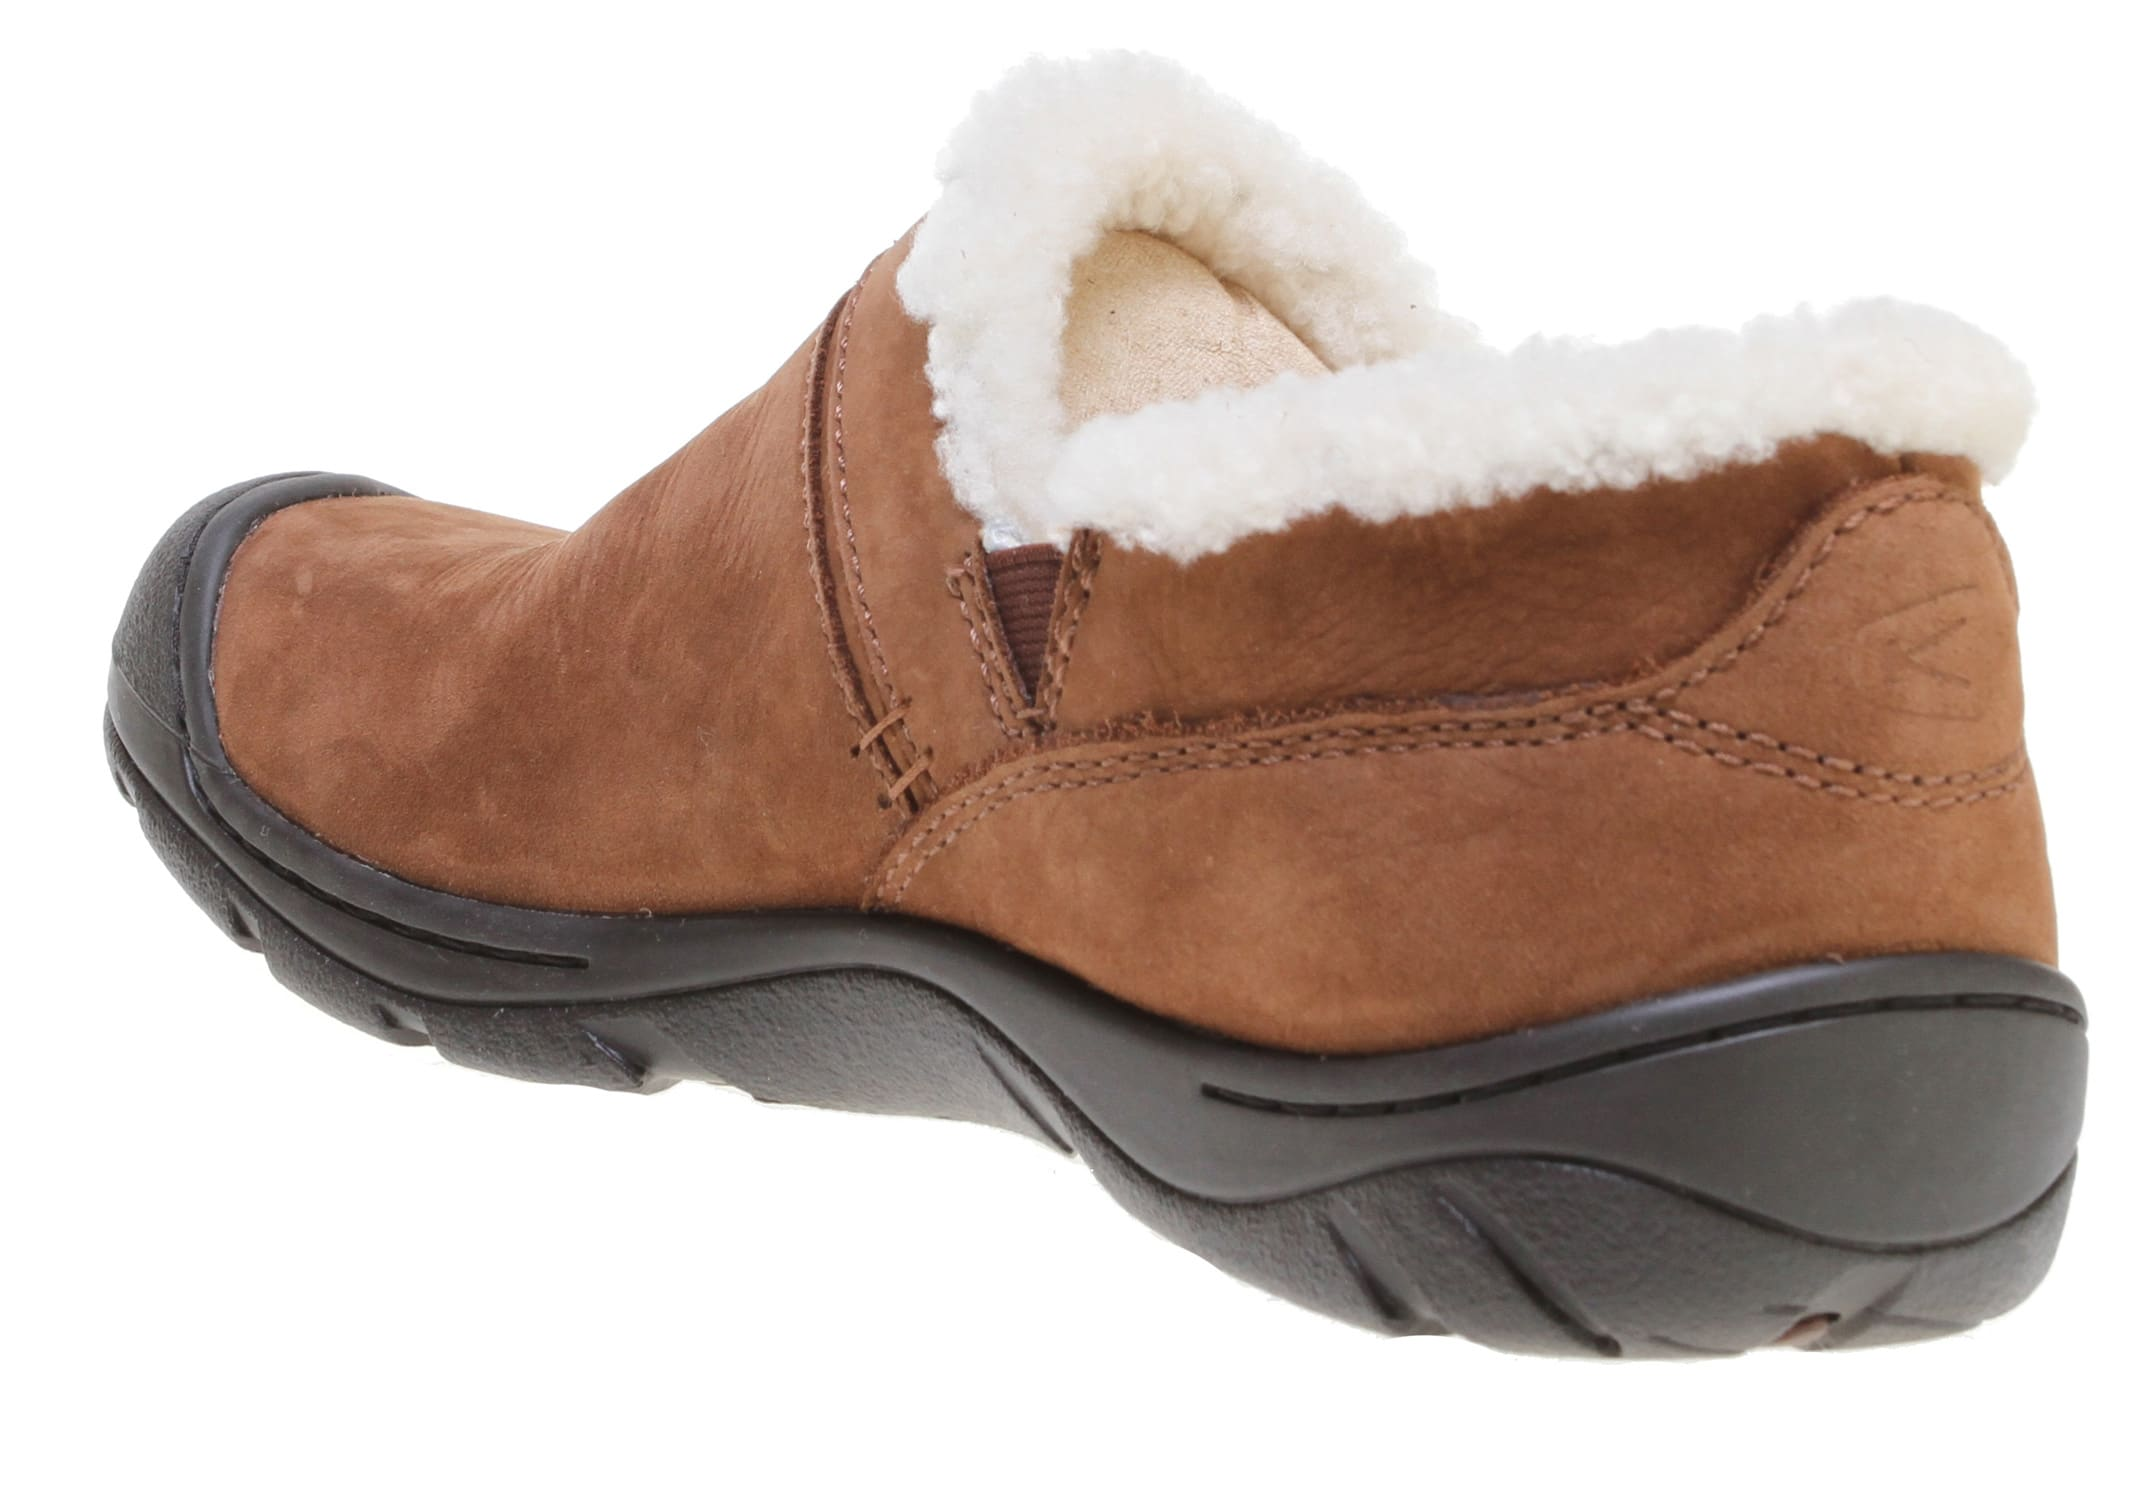 Keen Crested Butte Slip On Shoes - thumbnail 3